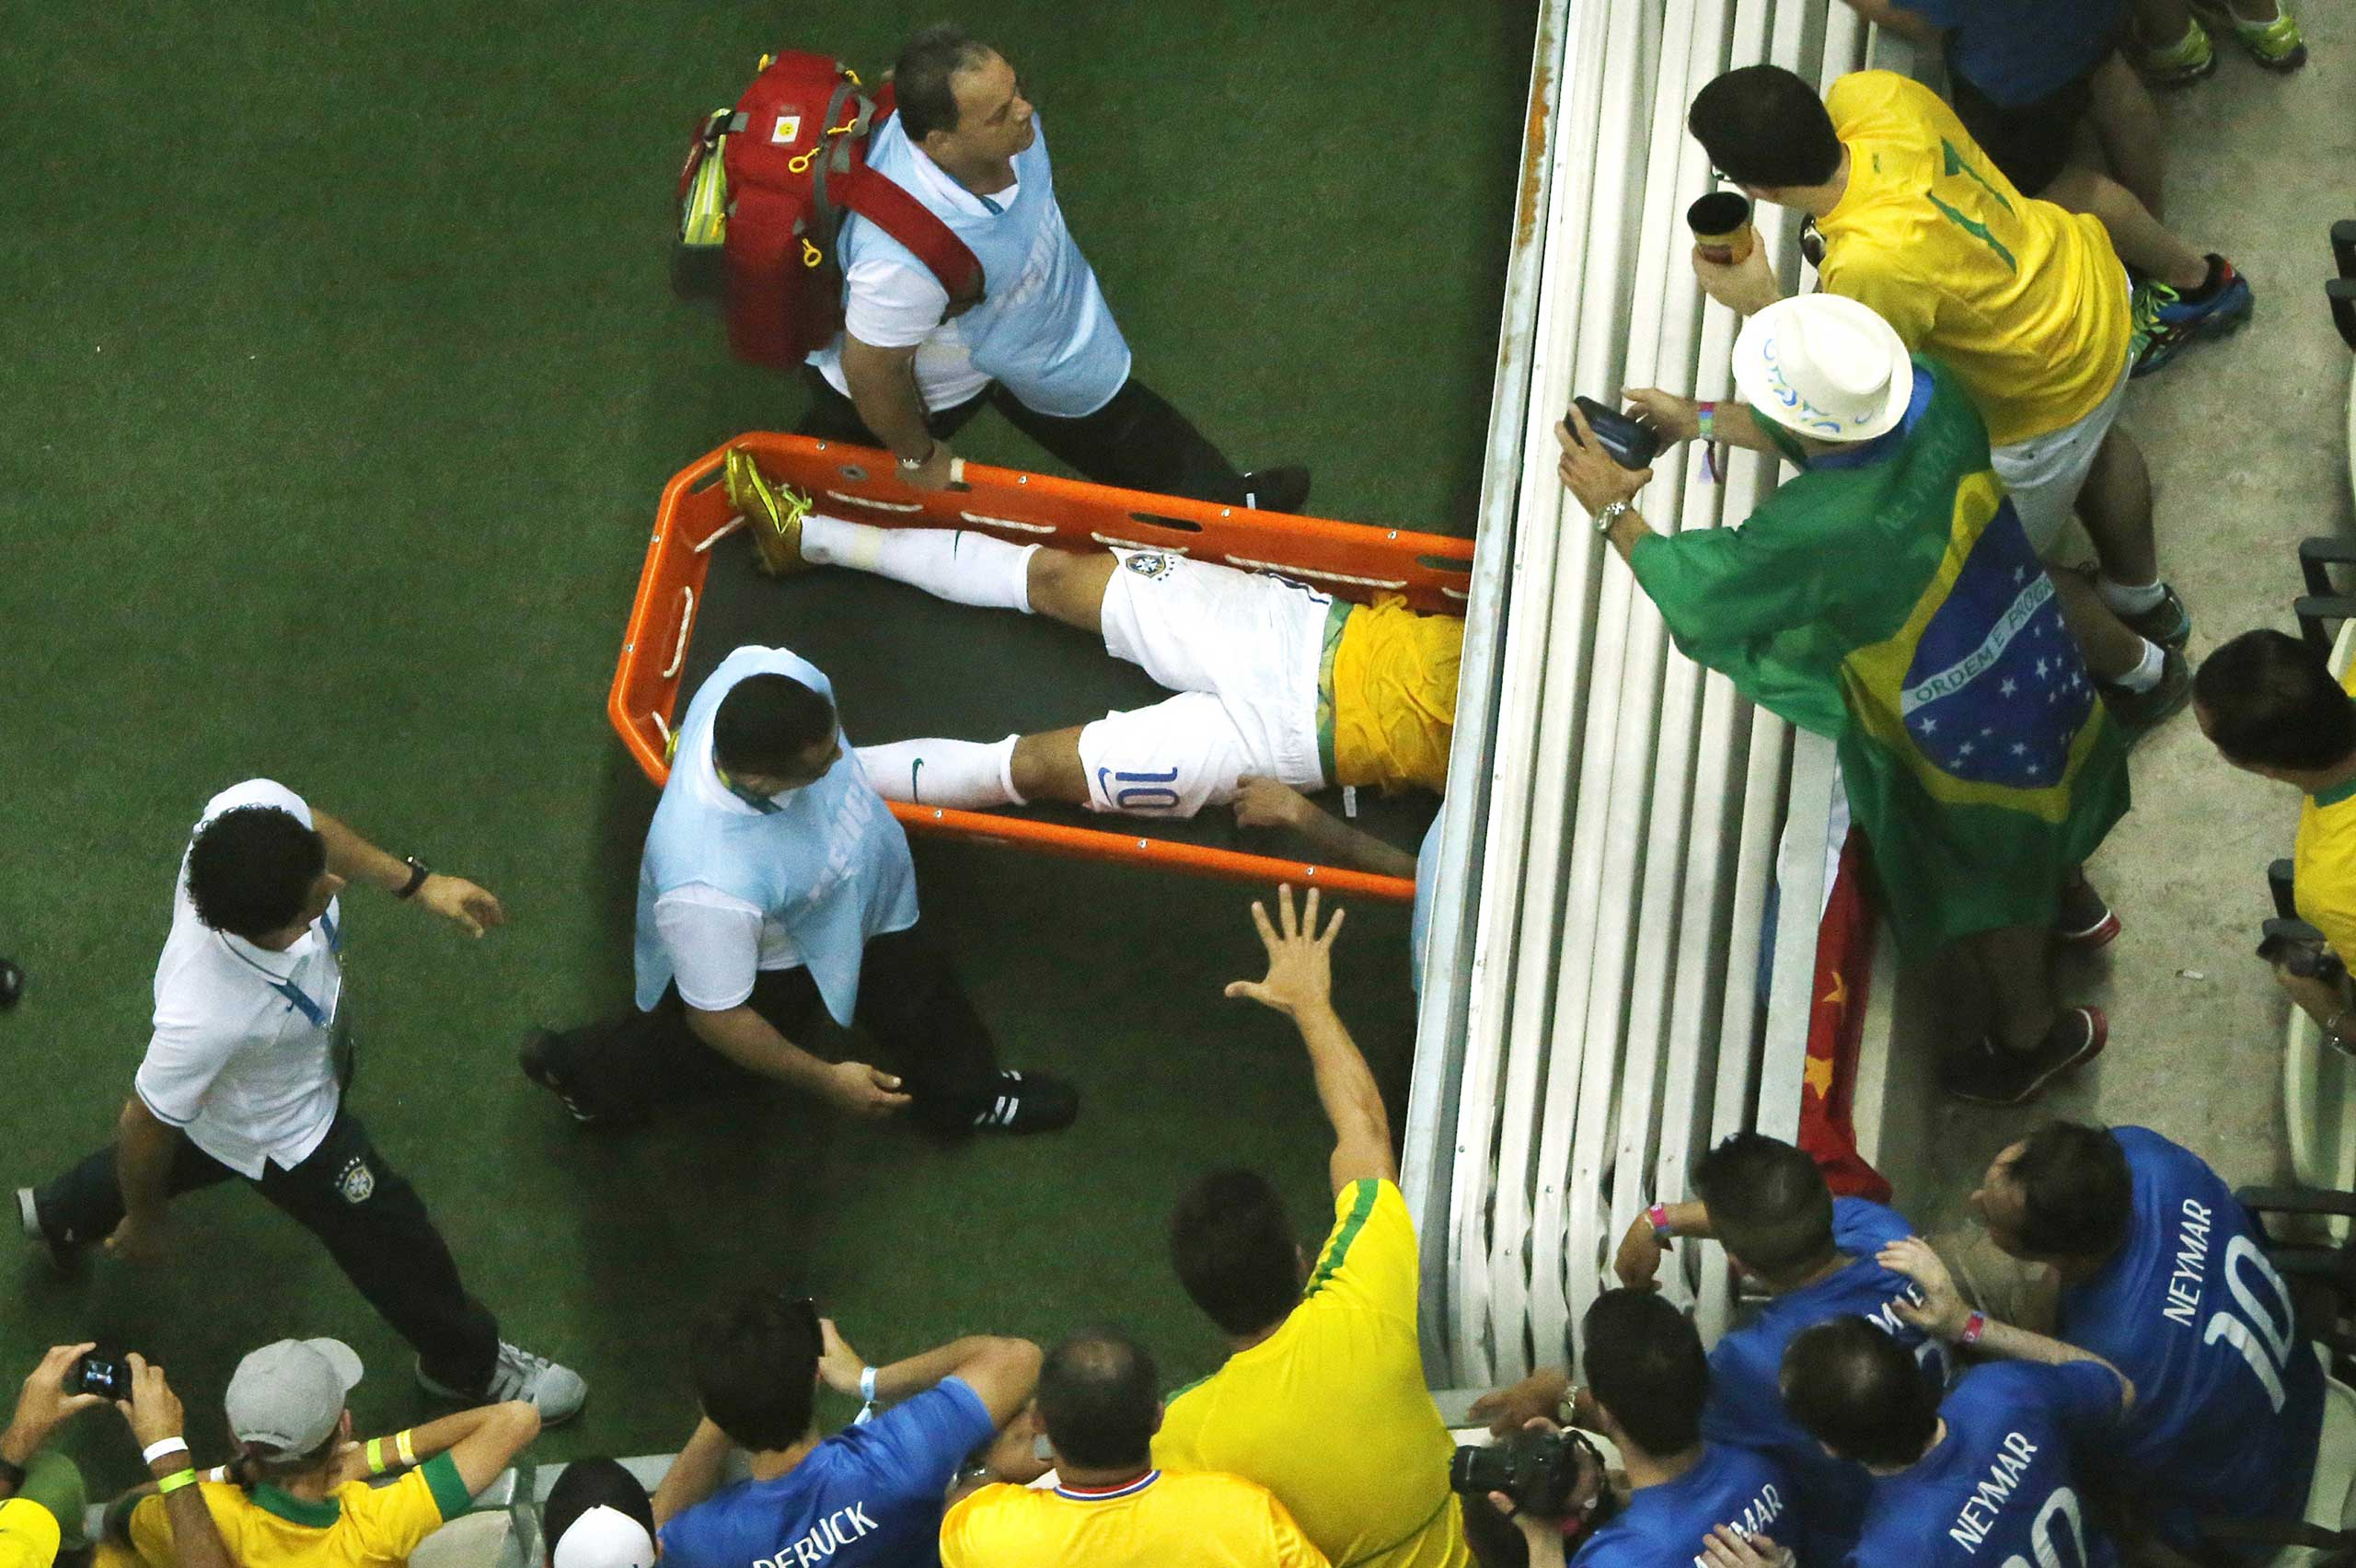 Fans react as Brazil's forward Neymar is carried off the pitch on a stretcher after being injured during the quarter-final football match between Brazil and Colombia at the Castelao Stadium in Fortaleza during the 2014 FIFA World Cup,  July 4, 2014.